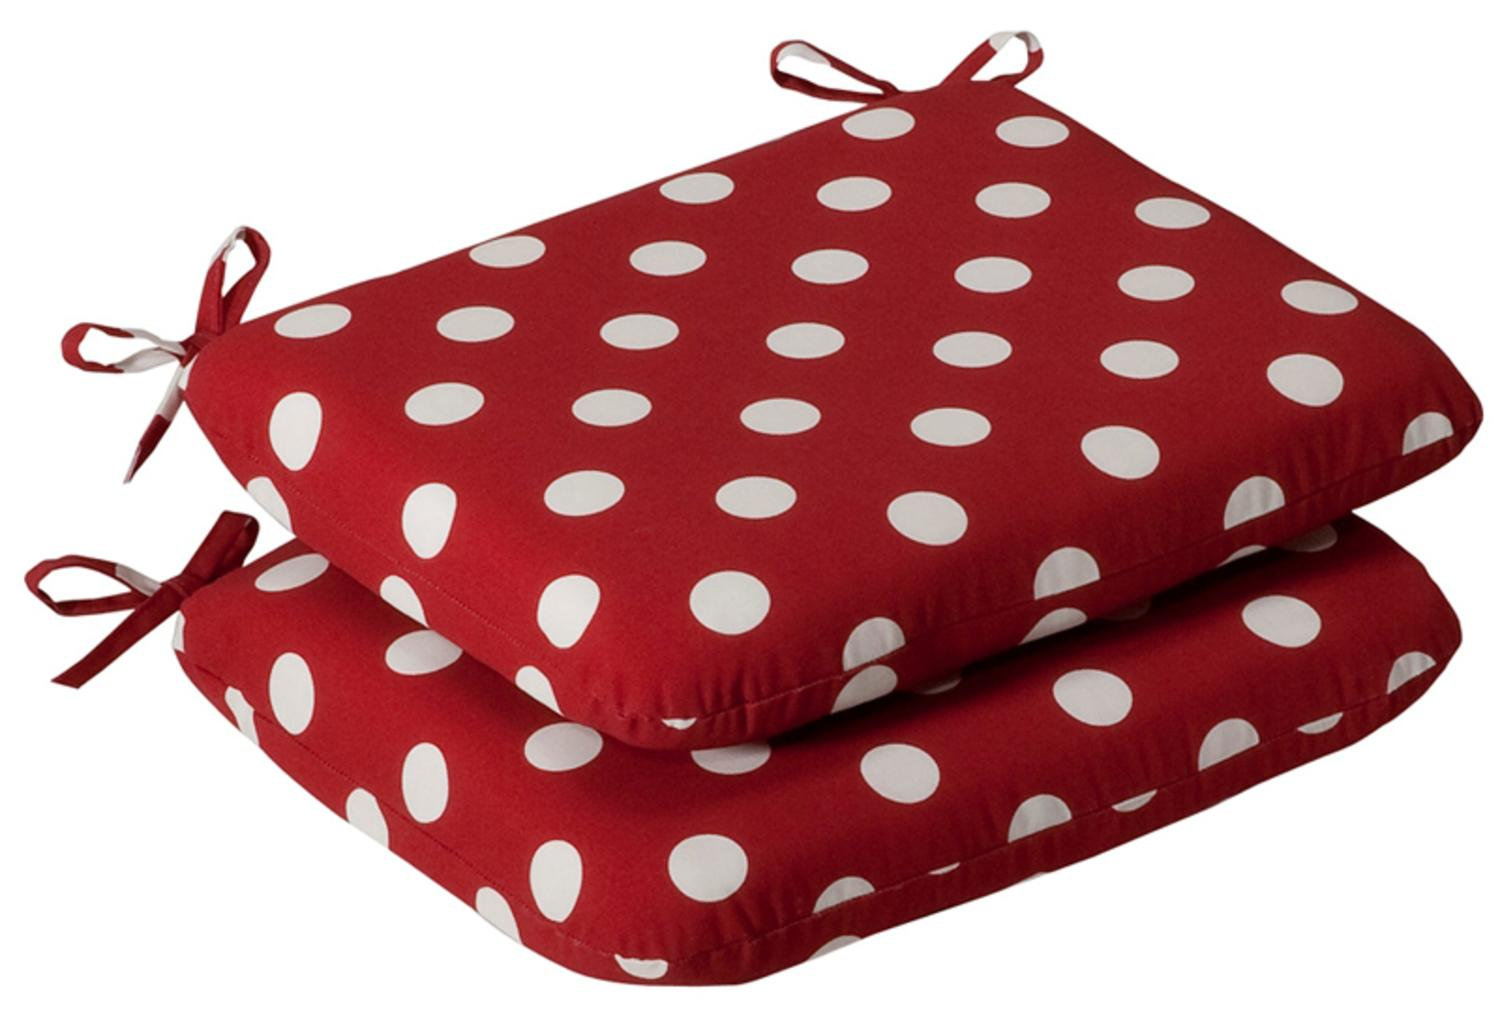 Pack Of 2 Outdoor Patio Furniture Chair Seat Cushions   Red U0026 White Polka  Dot